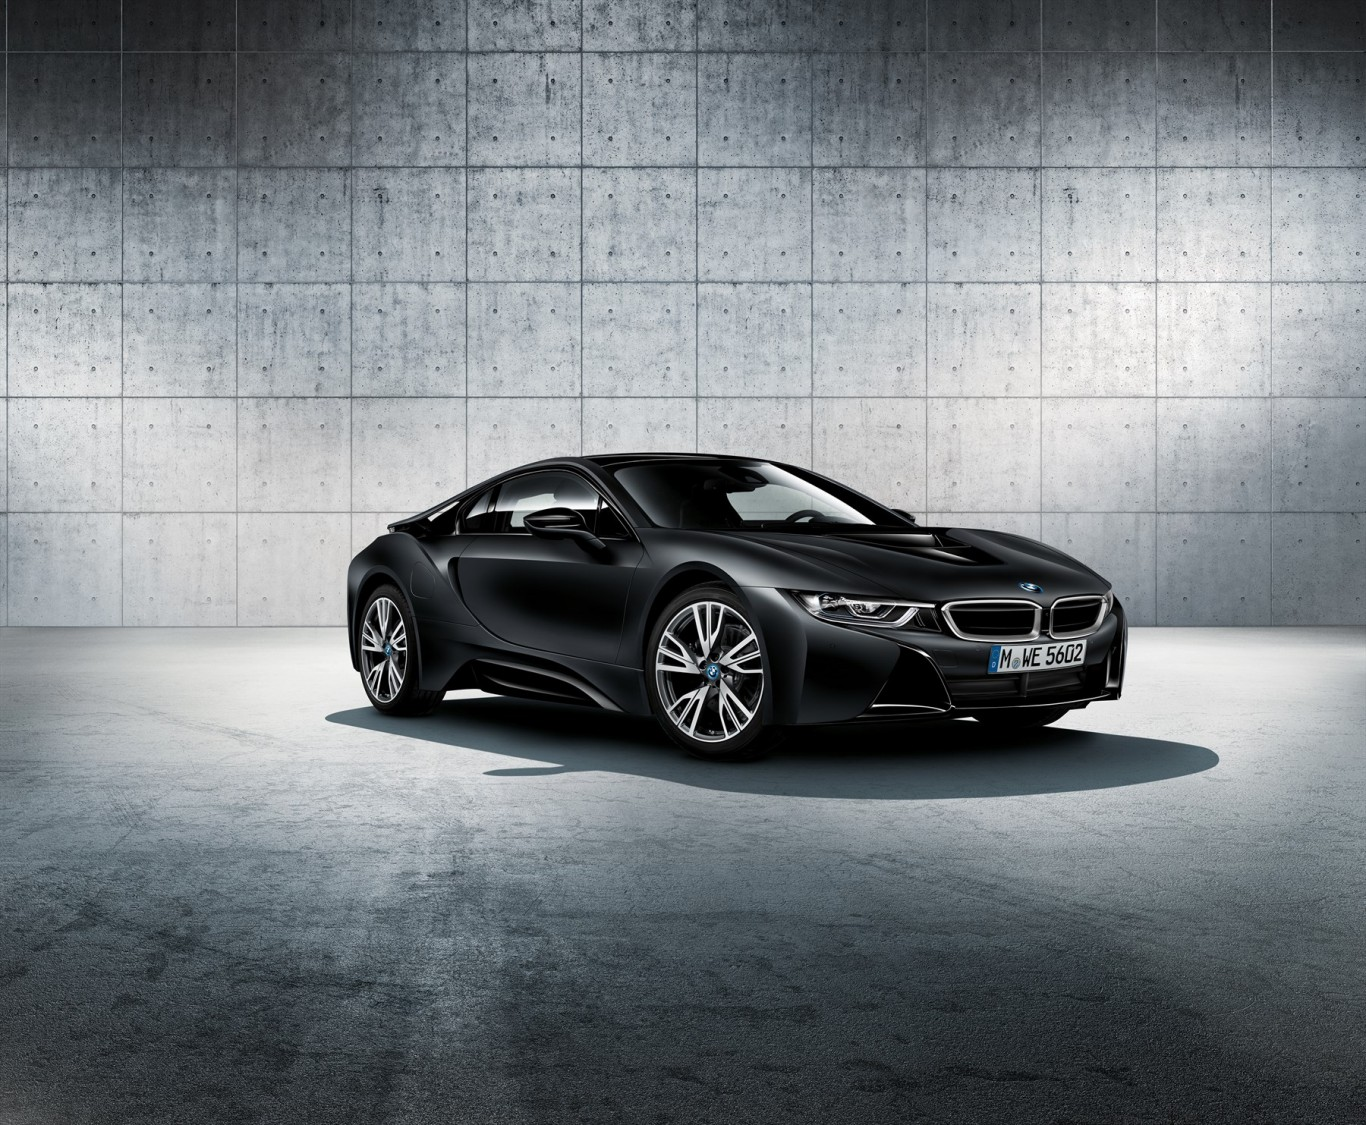 The Exclusive Bmw I8 Protonic Frozen Black Edition Now Available In